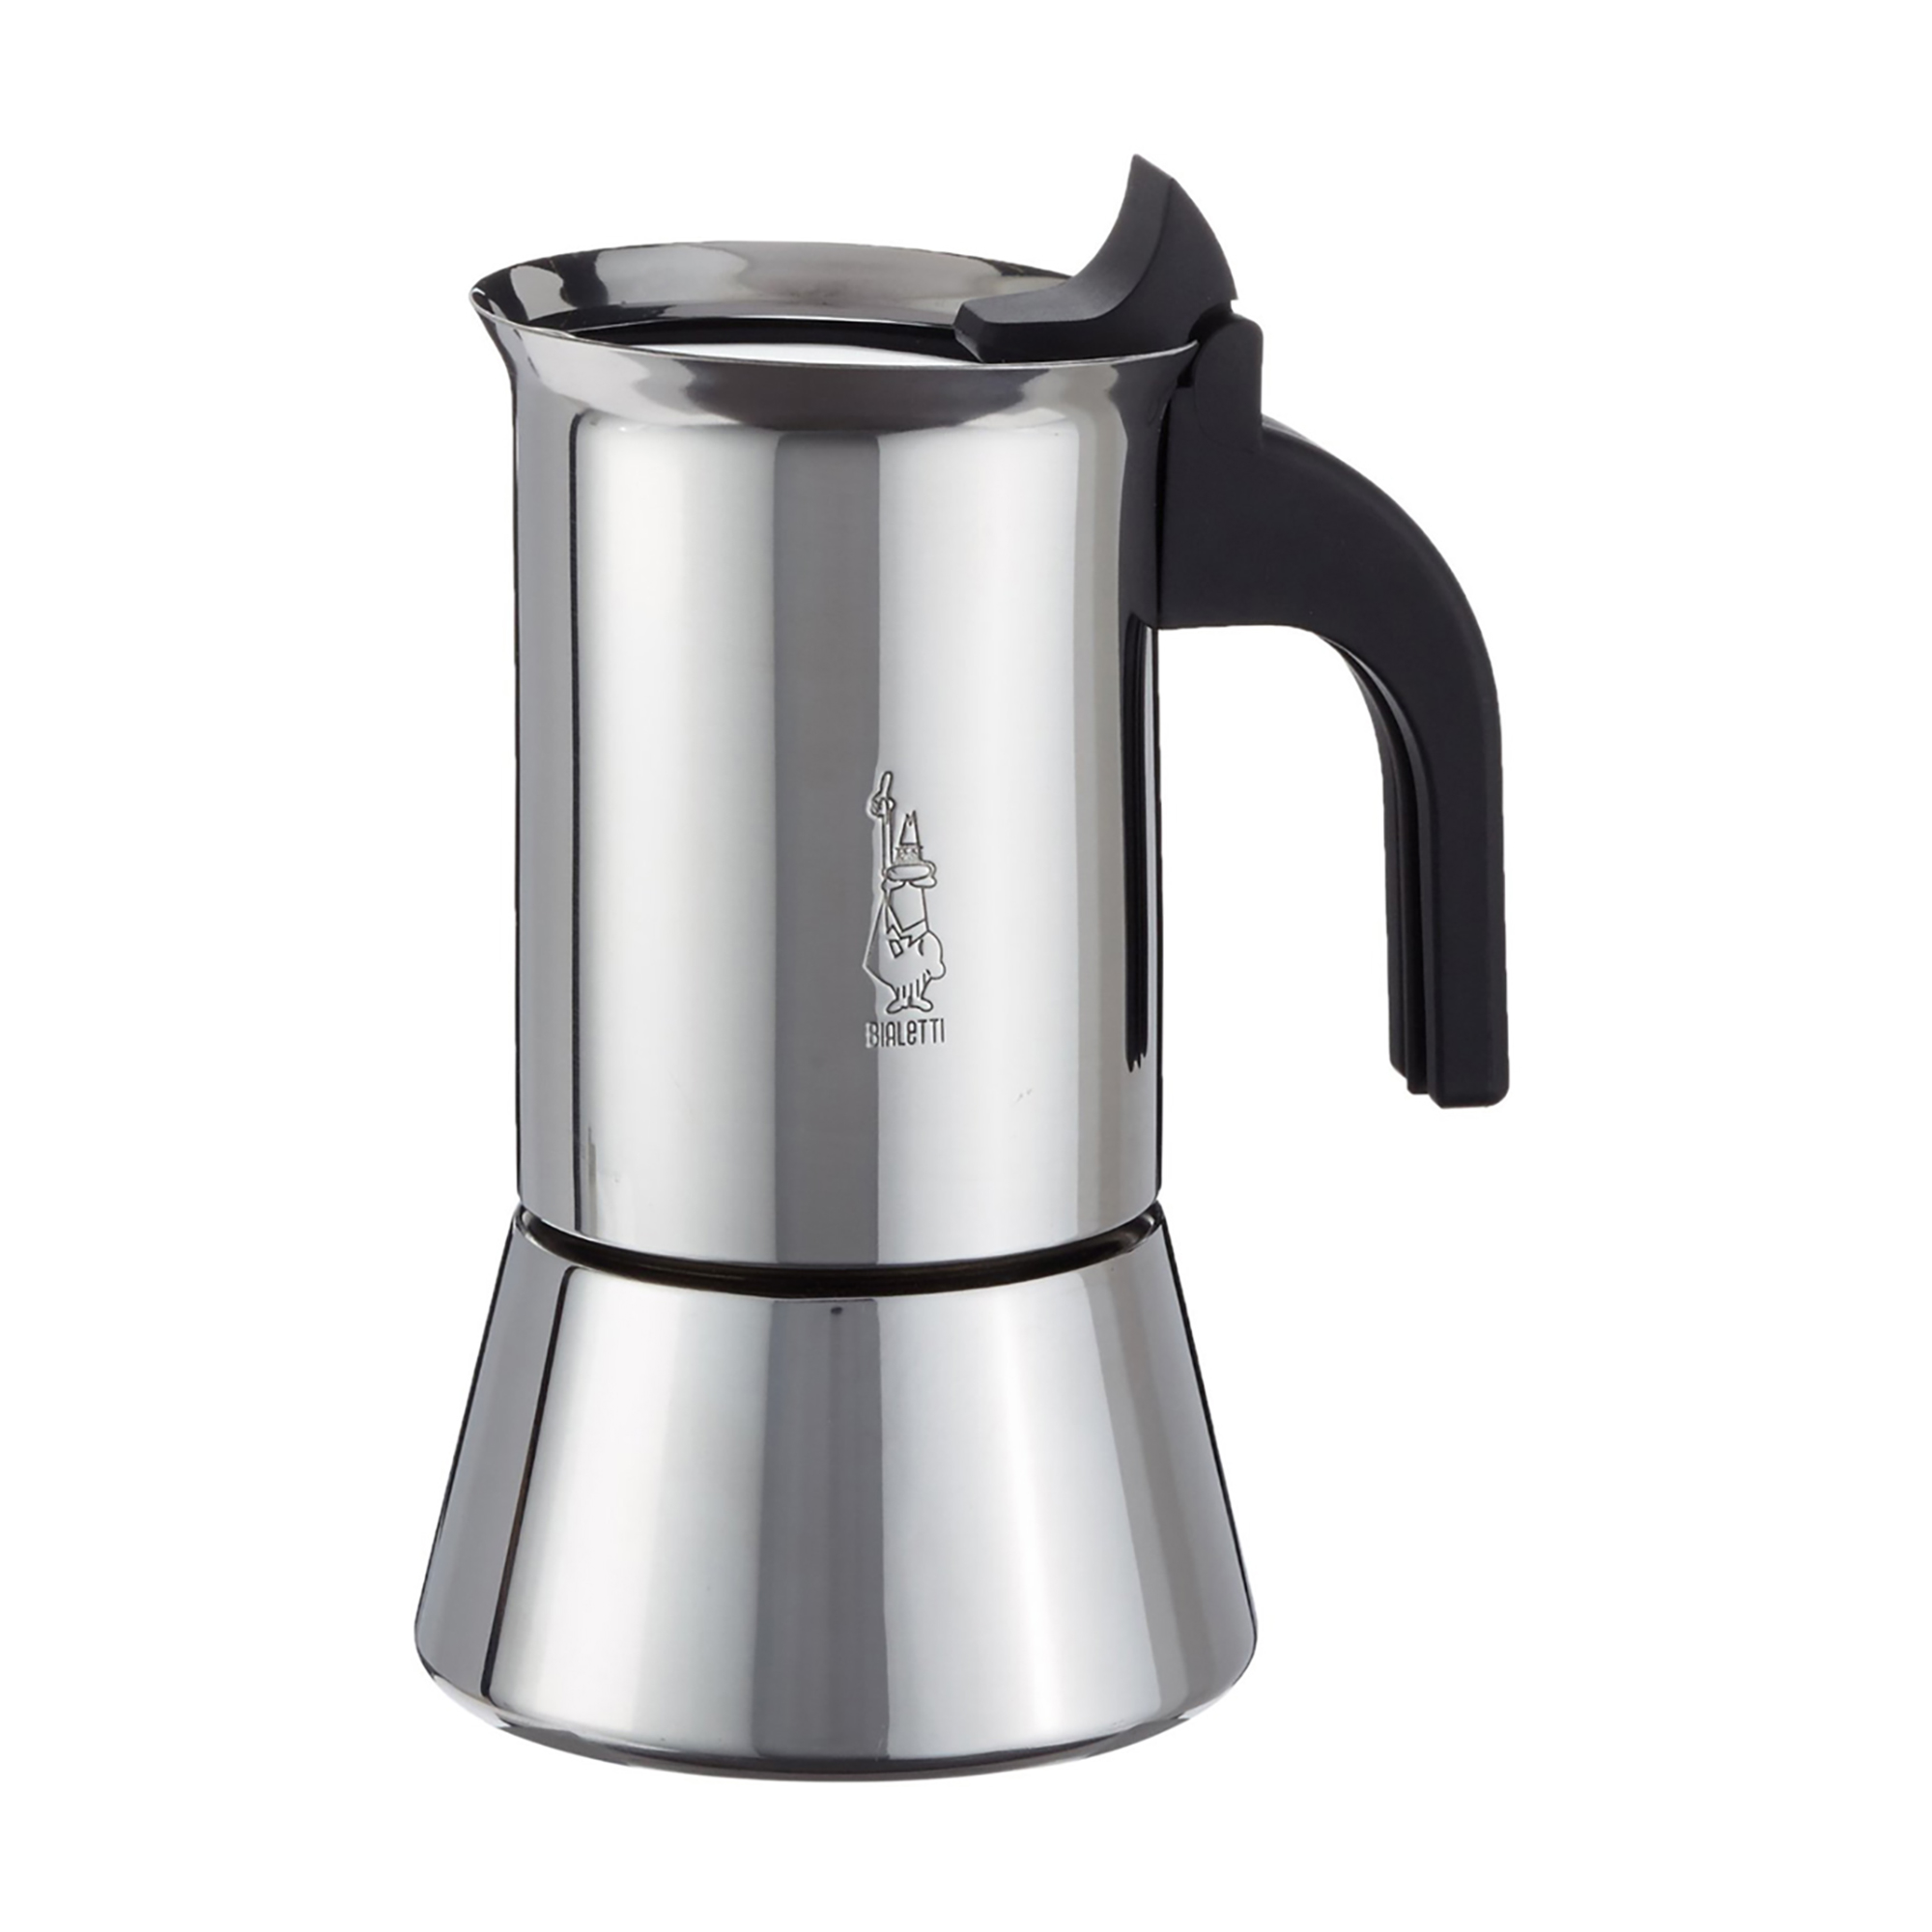 Image of   Bialetti Venus - 6 kopper